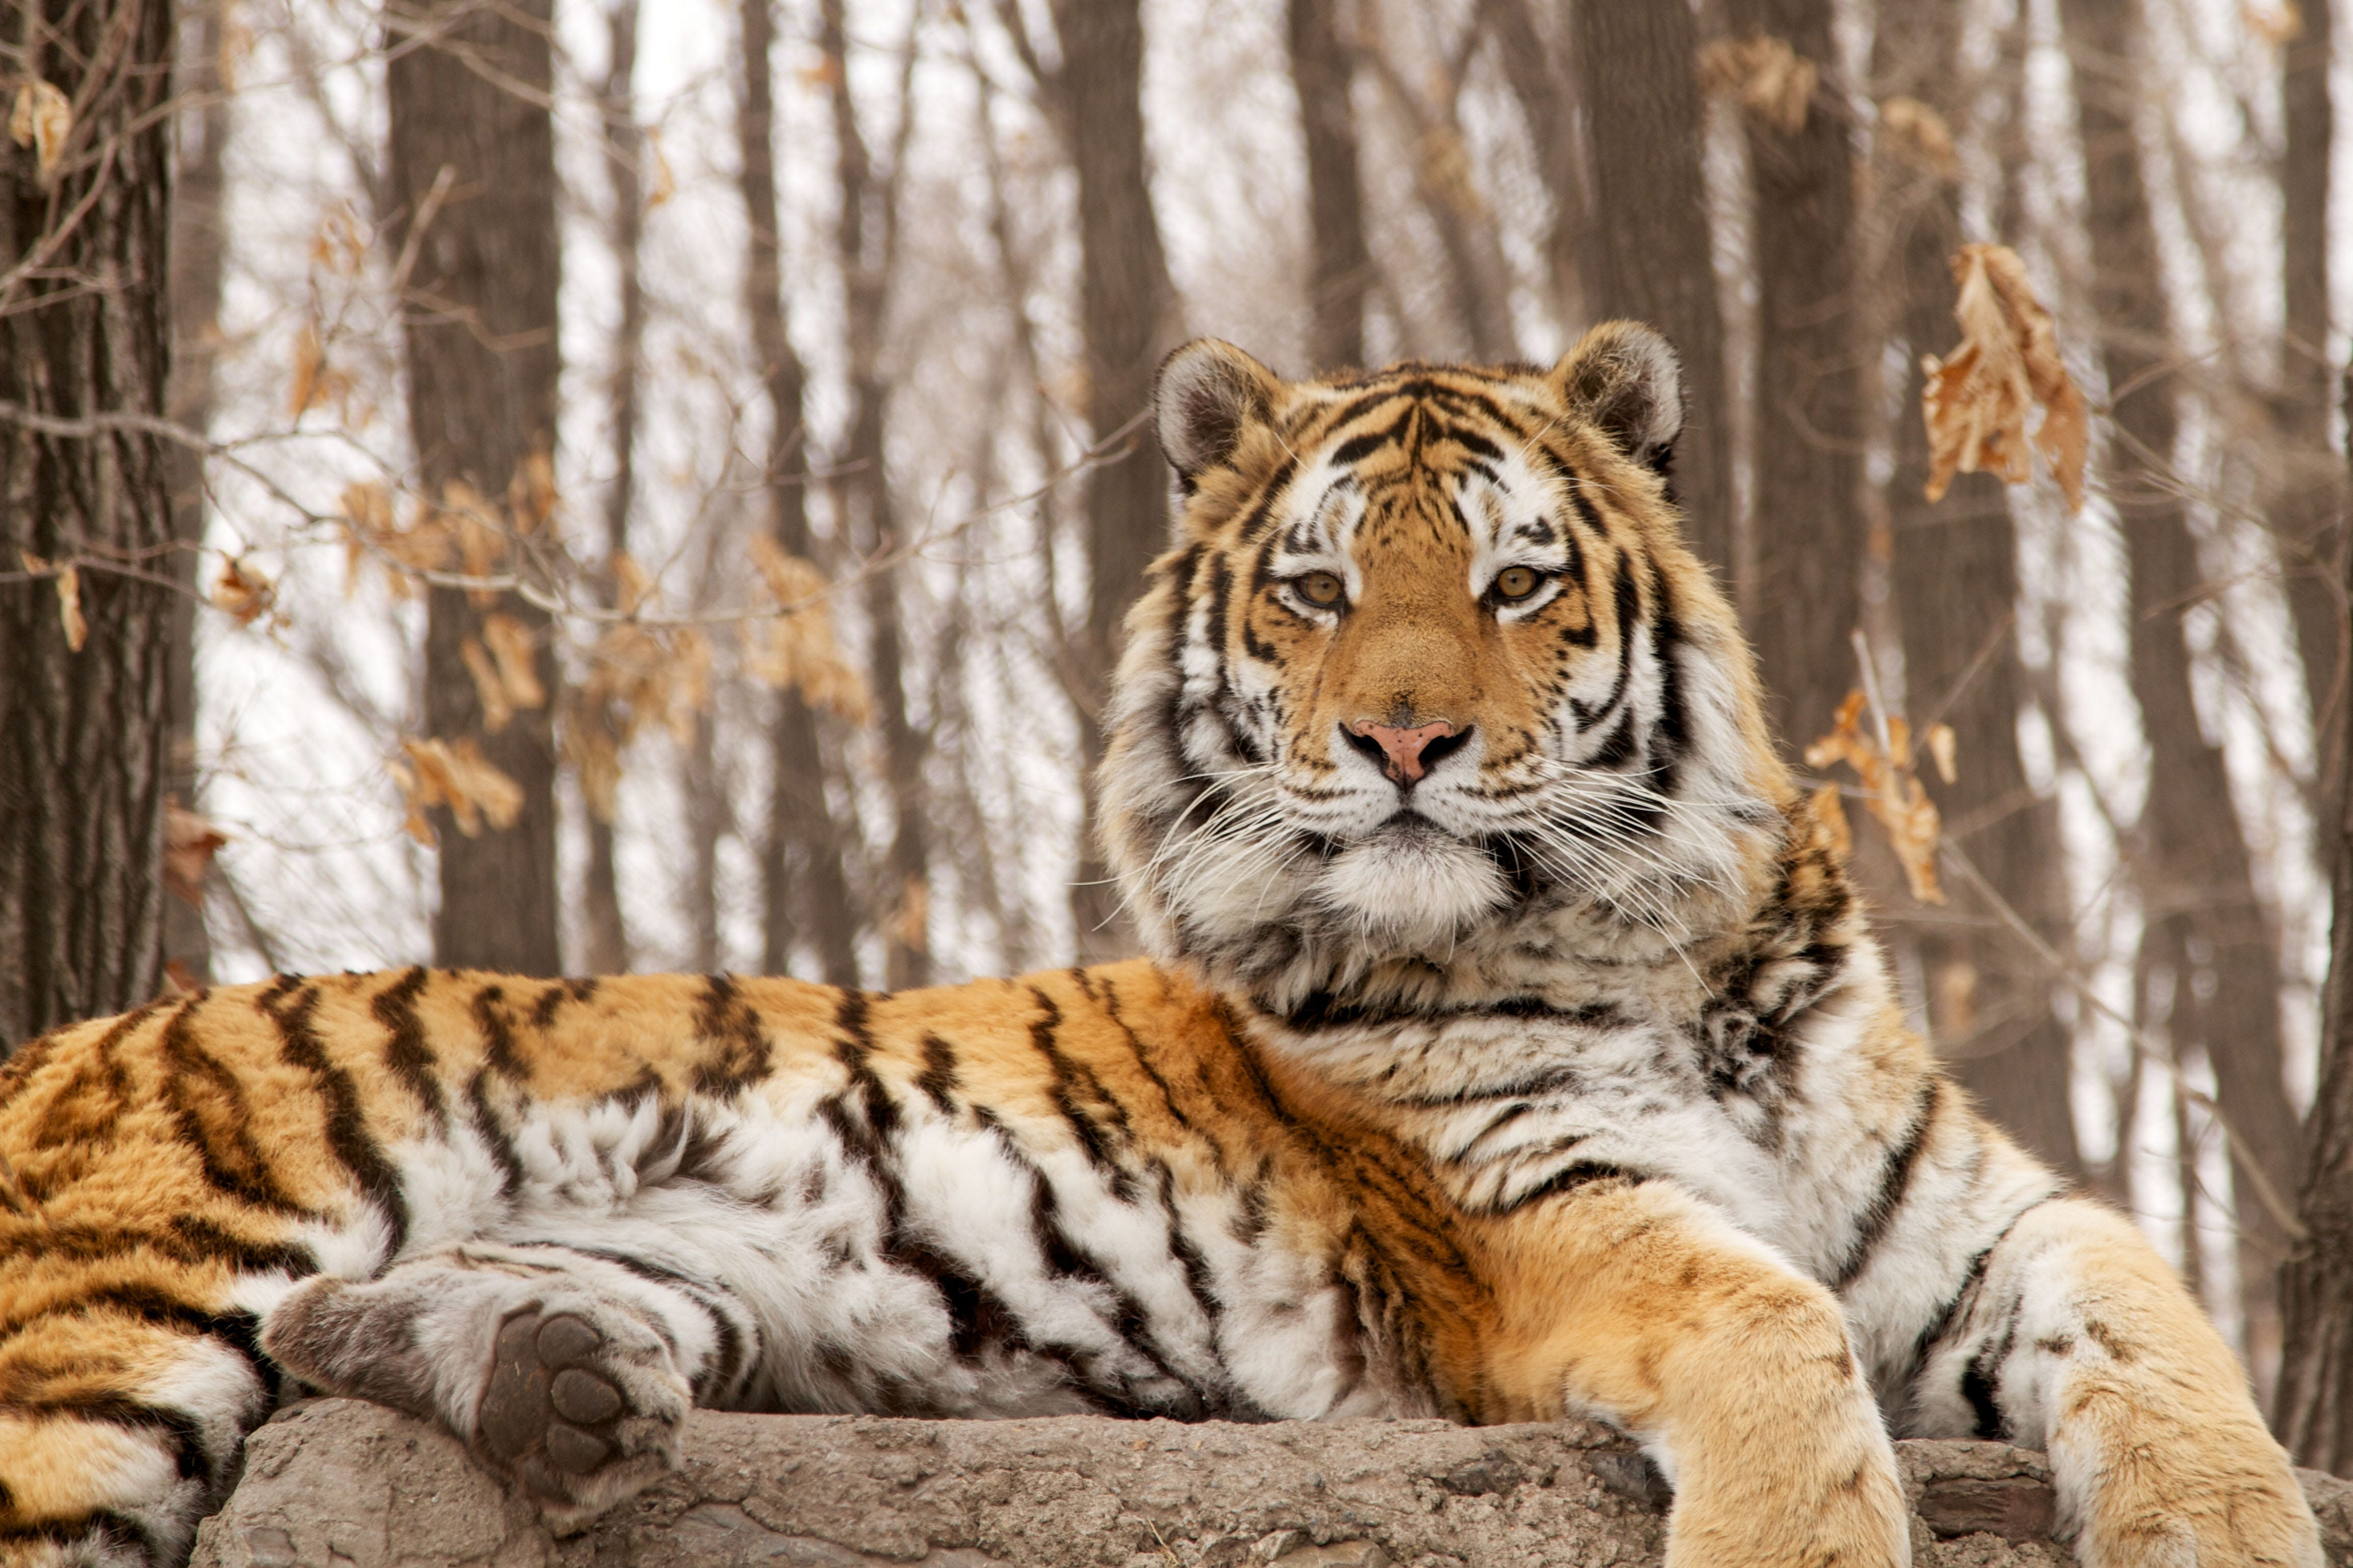 stuff the tigers Introduction to tigers tigers are terrestrial mammals that belong to the genus panthera a classification that groups the five species of big cats: lions, jaguars, leopards, snow leopards, and tigers.